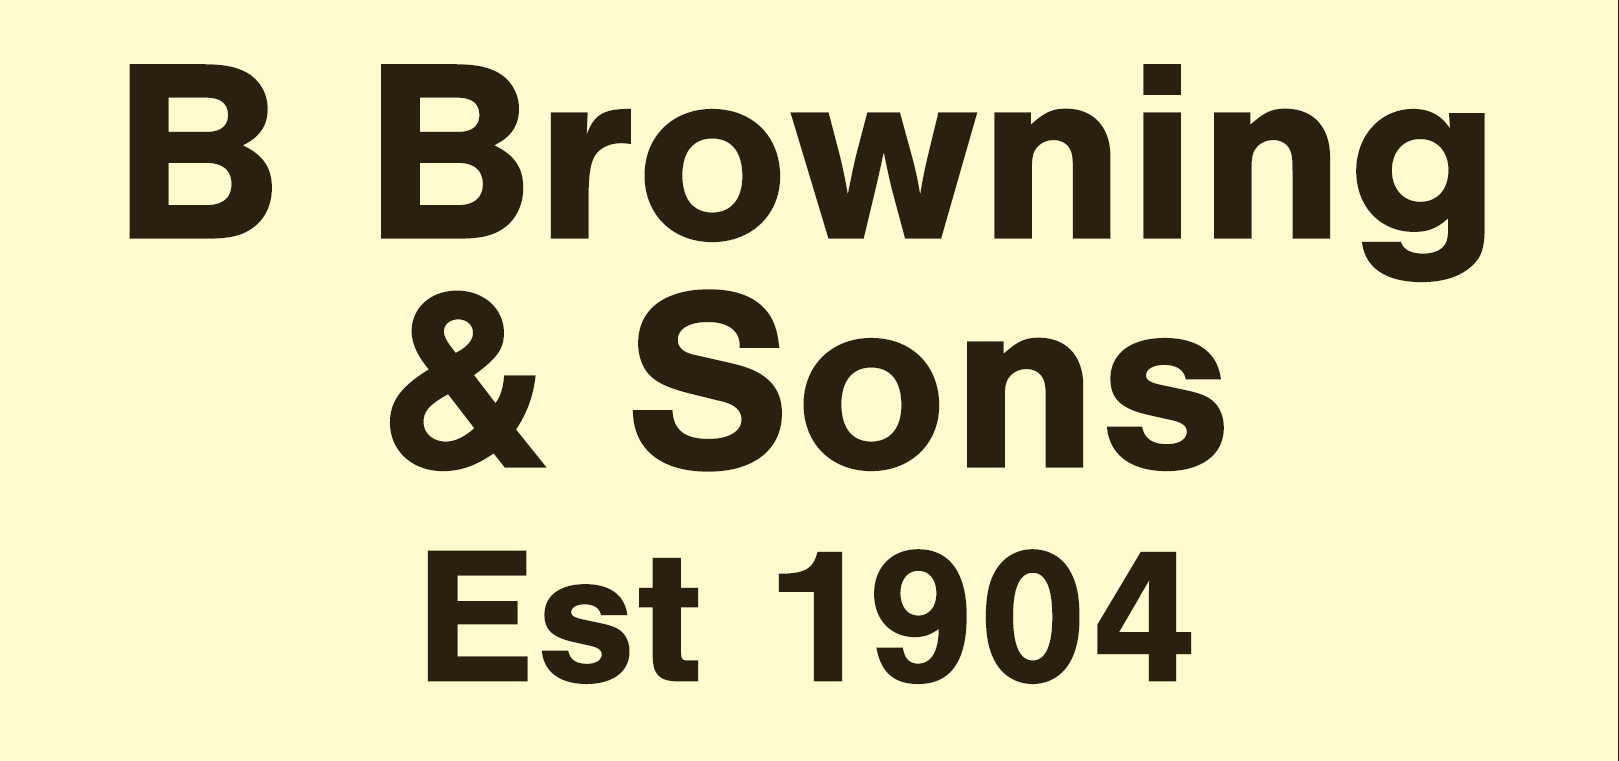 BROWNINGS (ACTUAL)